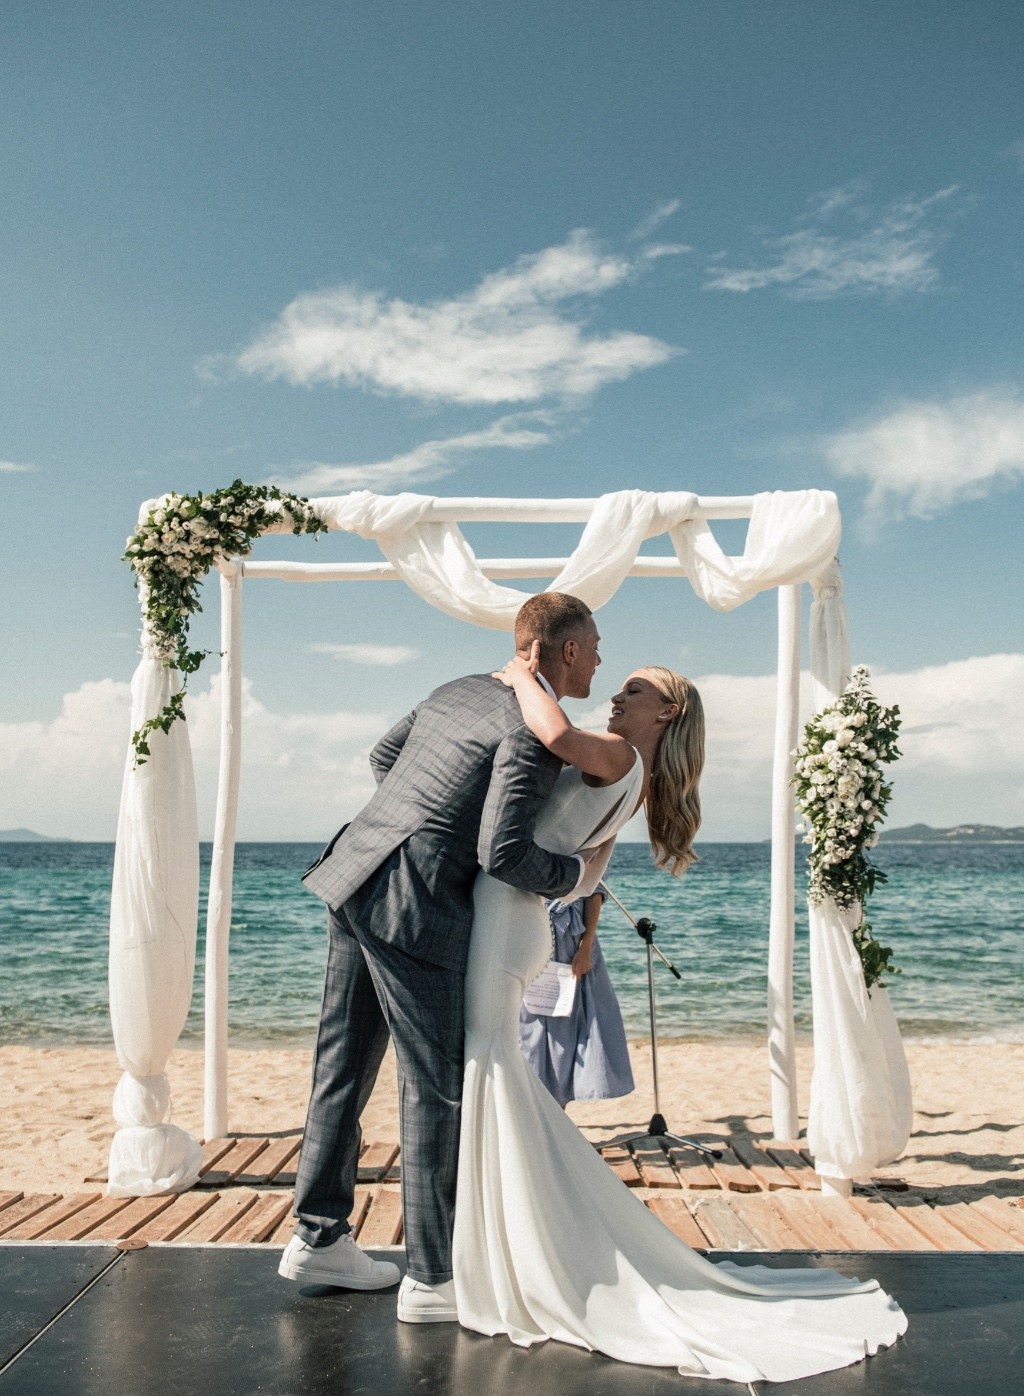 A chic beach wedding in Halkidiki, Greece. A chic floral arch in white with gold touches